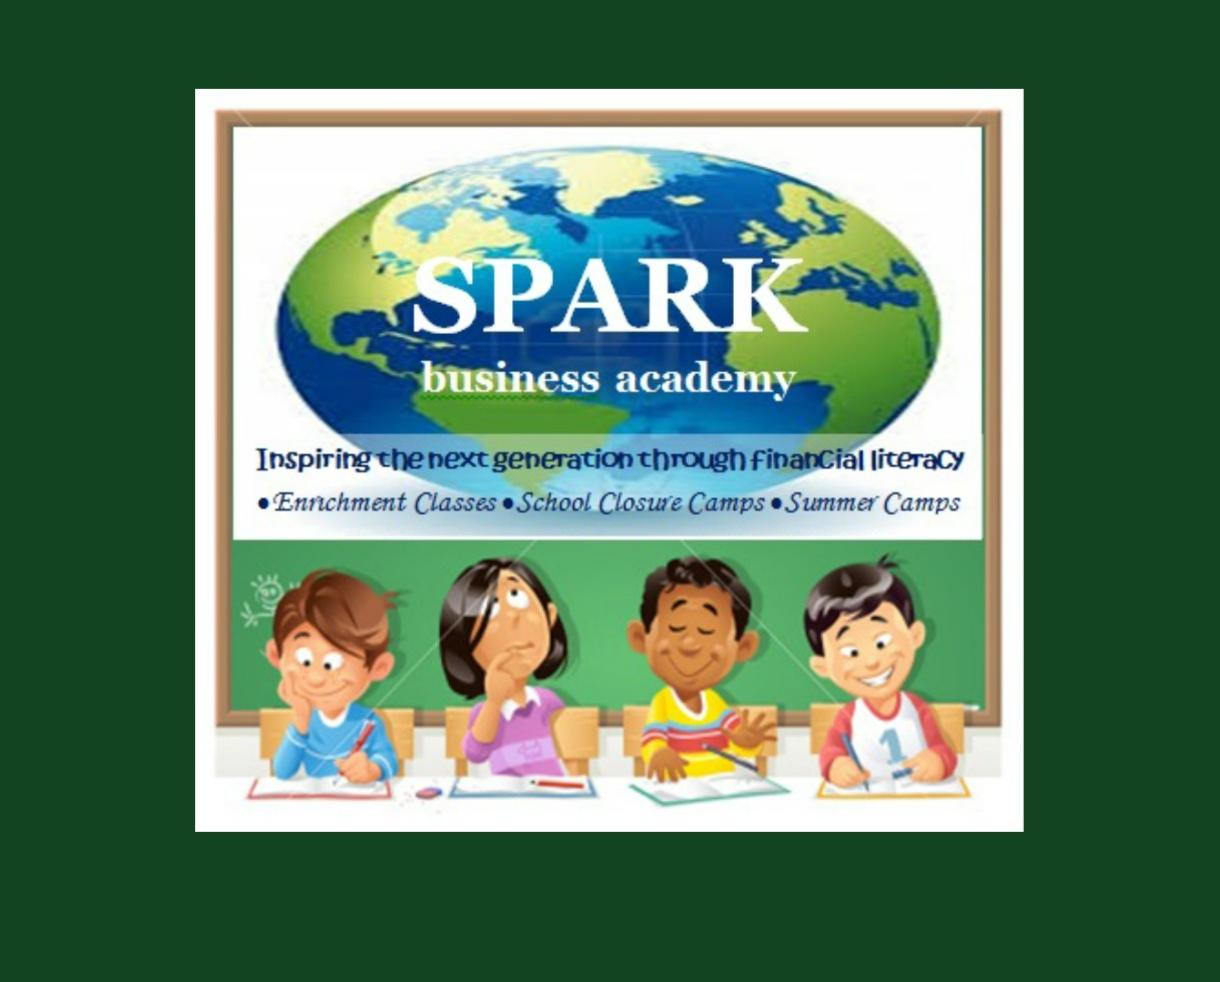 SPARK business academy Financial Literacy and Entrepreneurship Camps